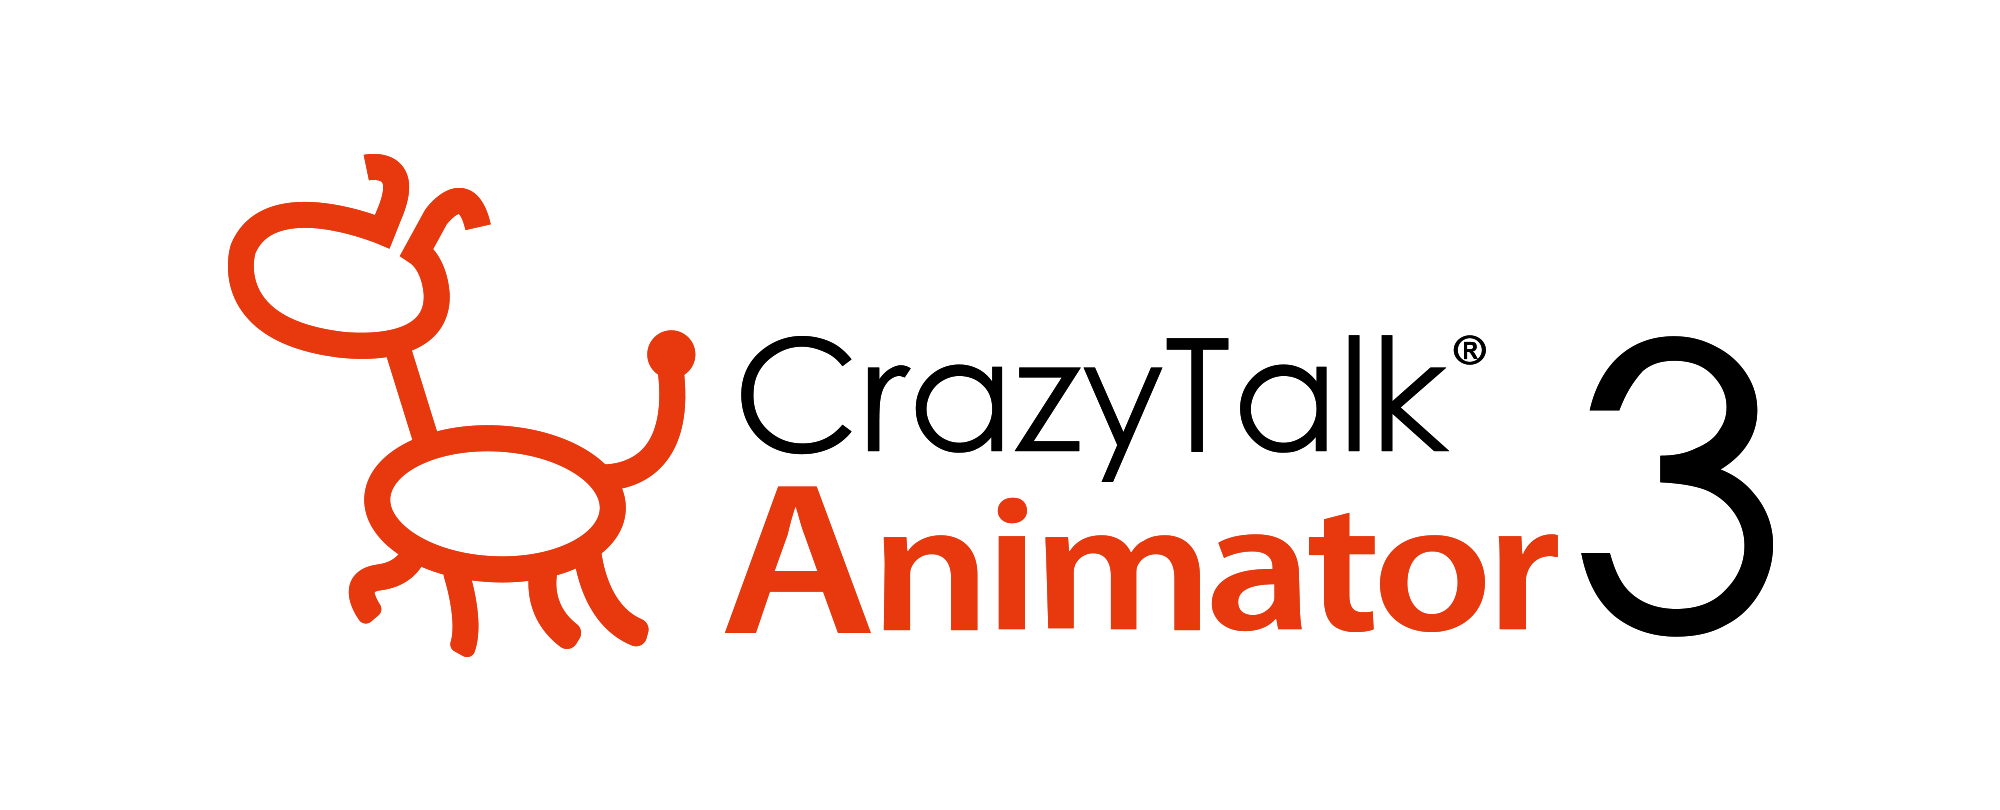 CrazyTalk Animator 2020 Crack  With Activation Key Full Free Download